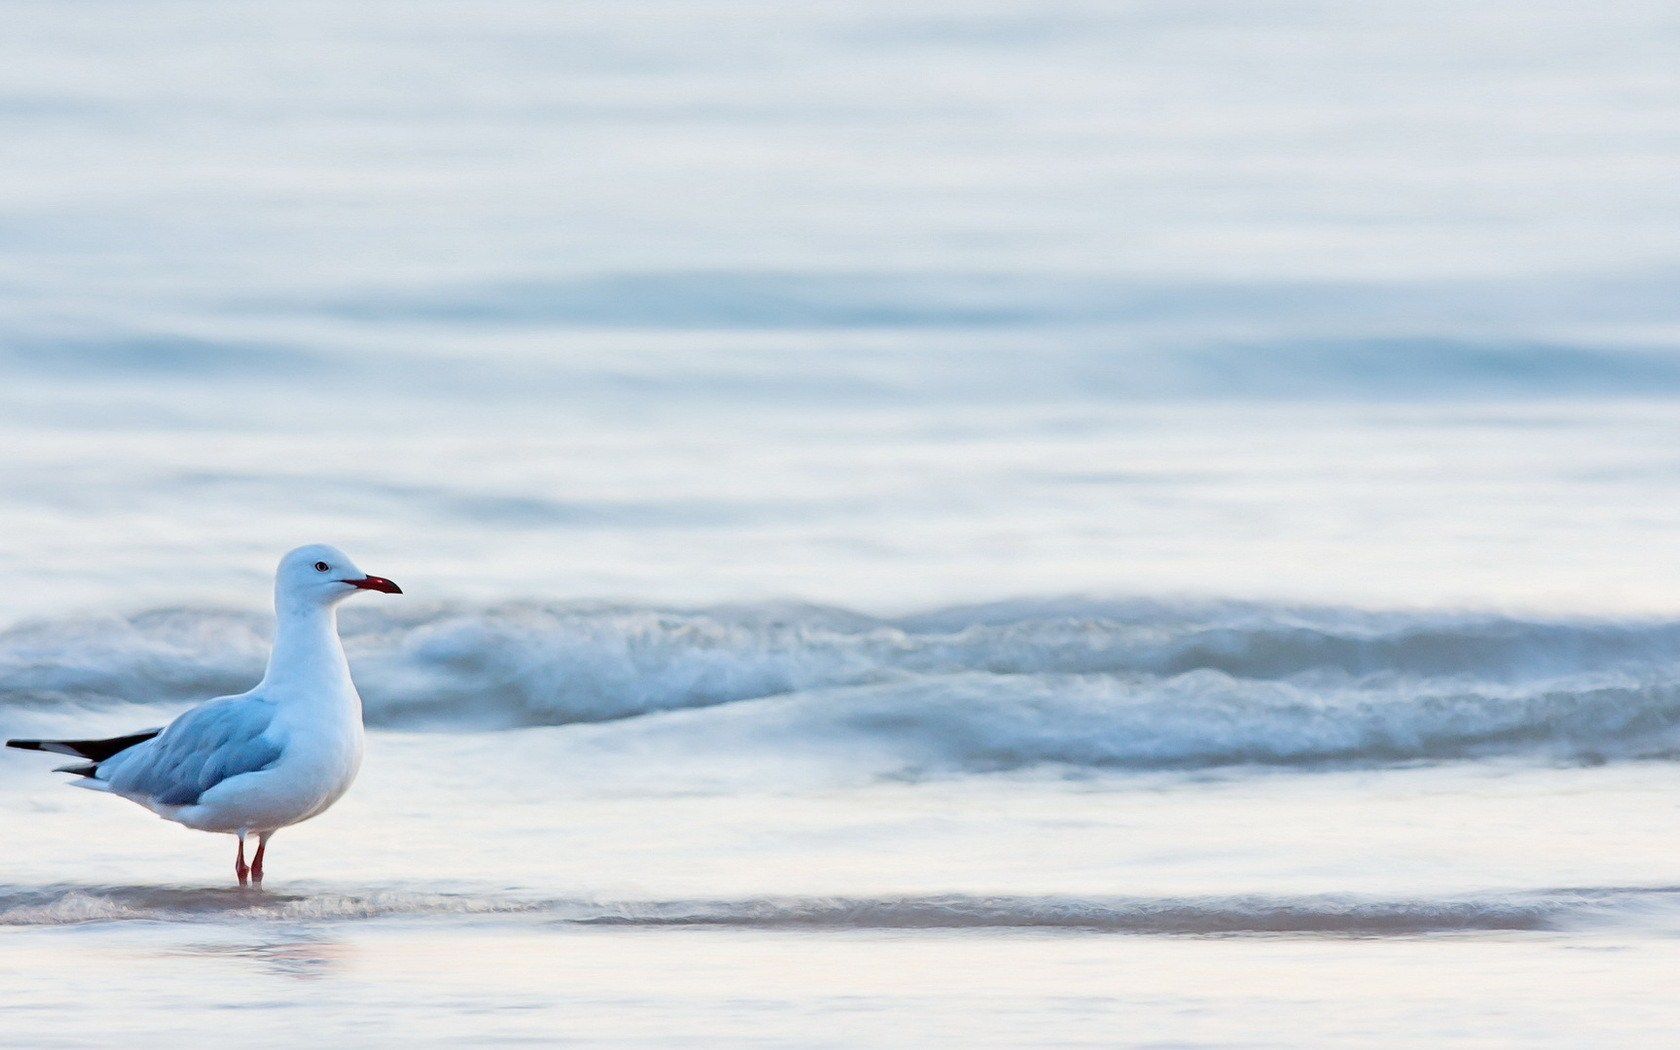 Beach Waves Sea Bird Seagull HD Wallpaper